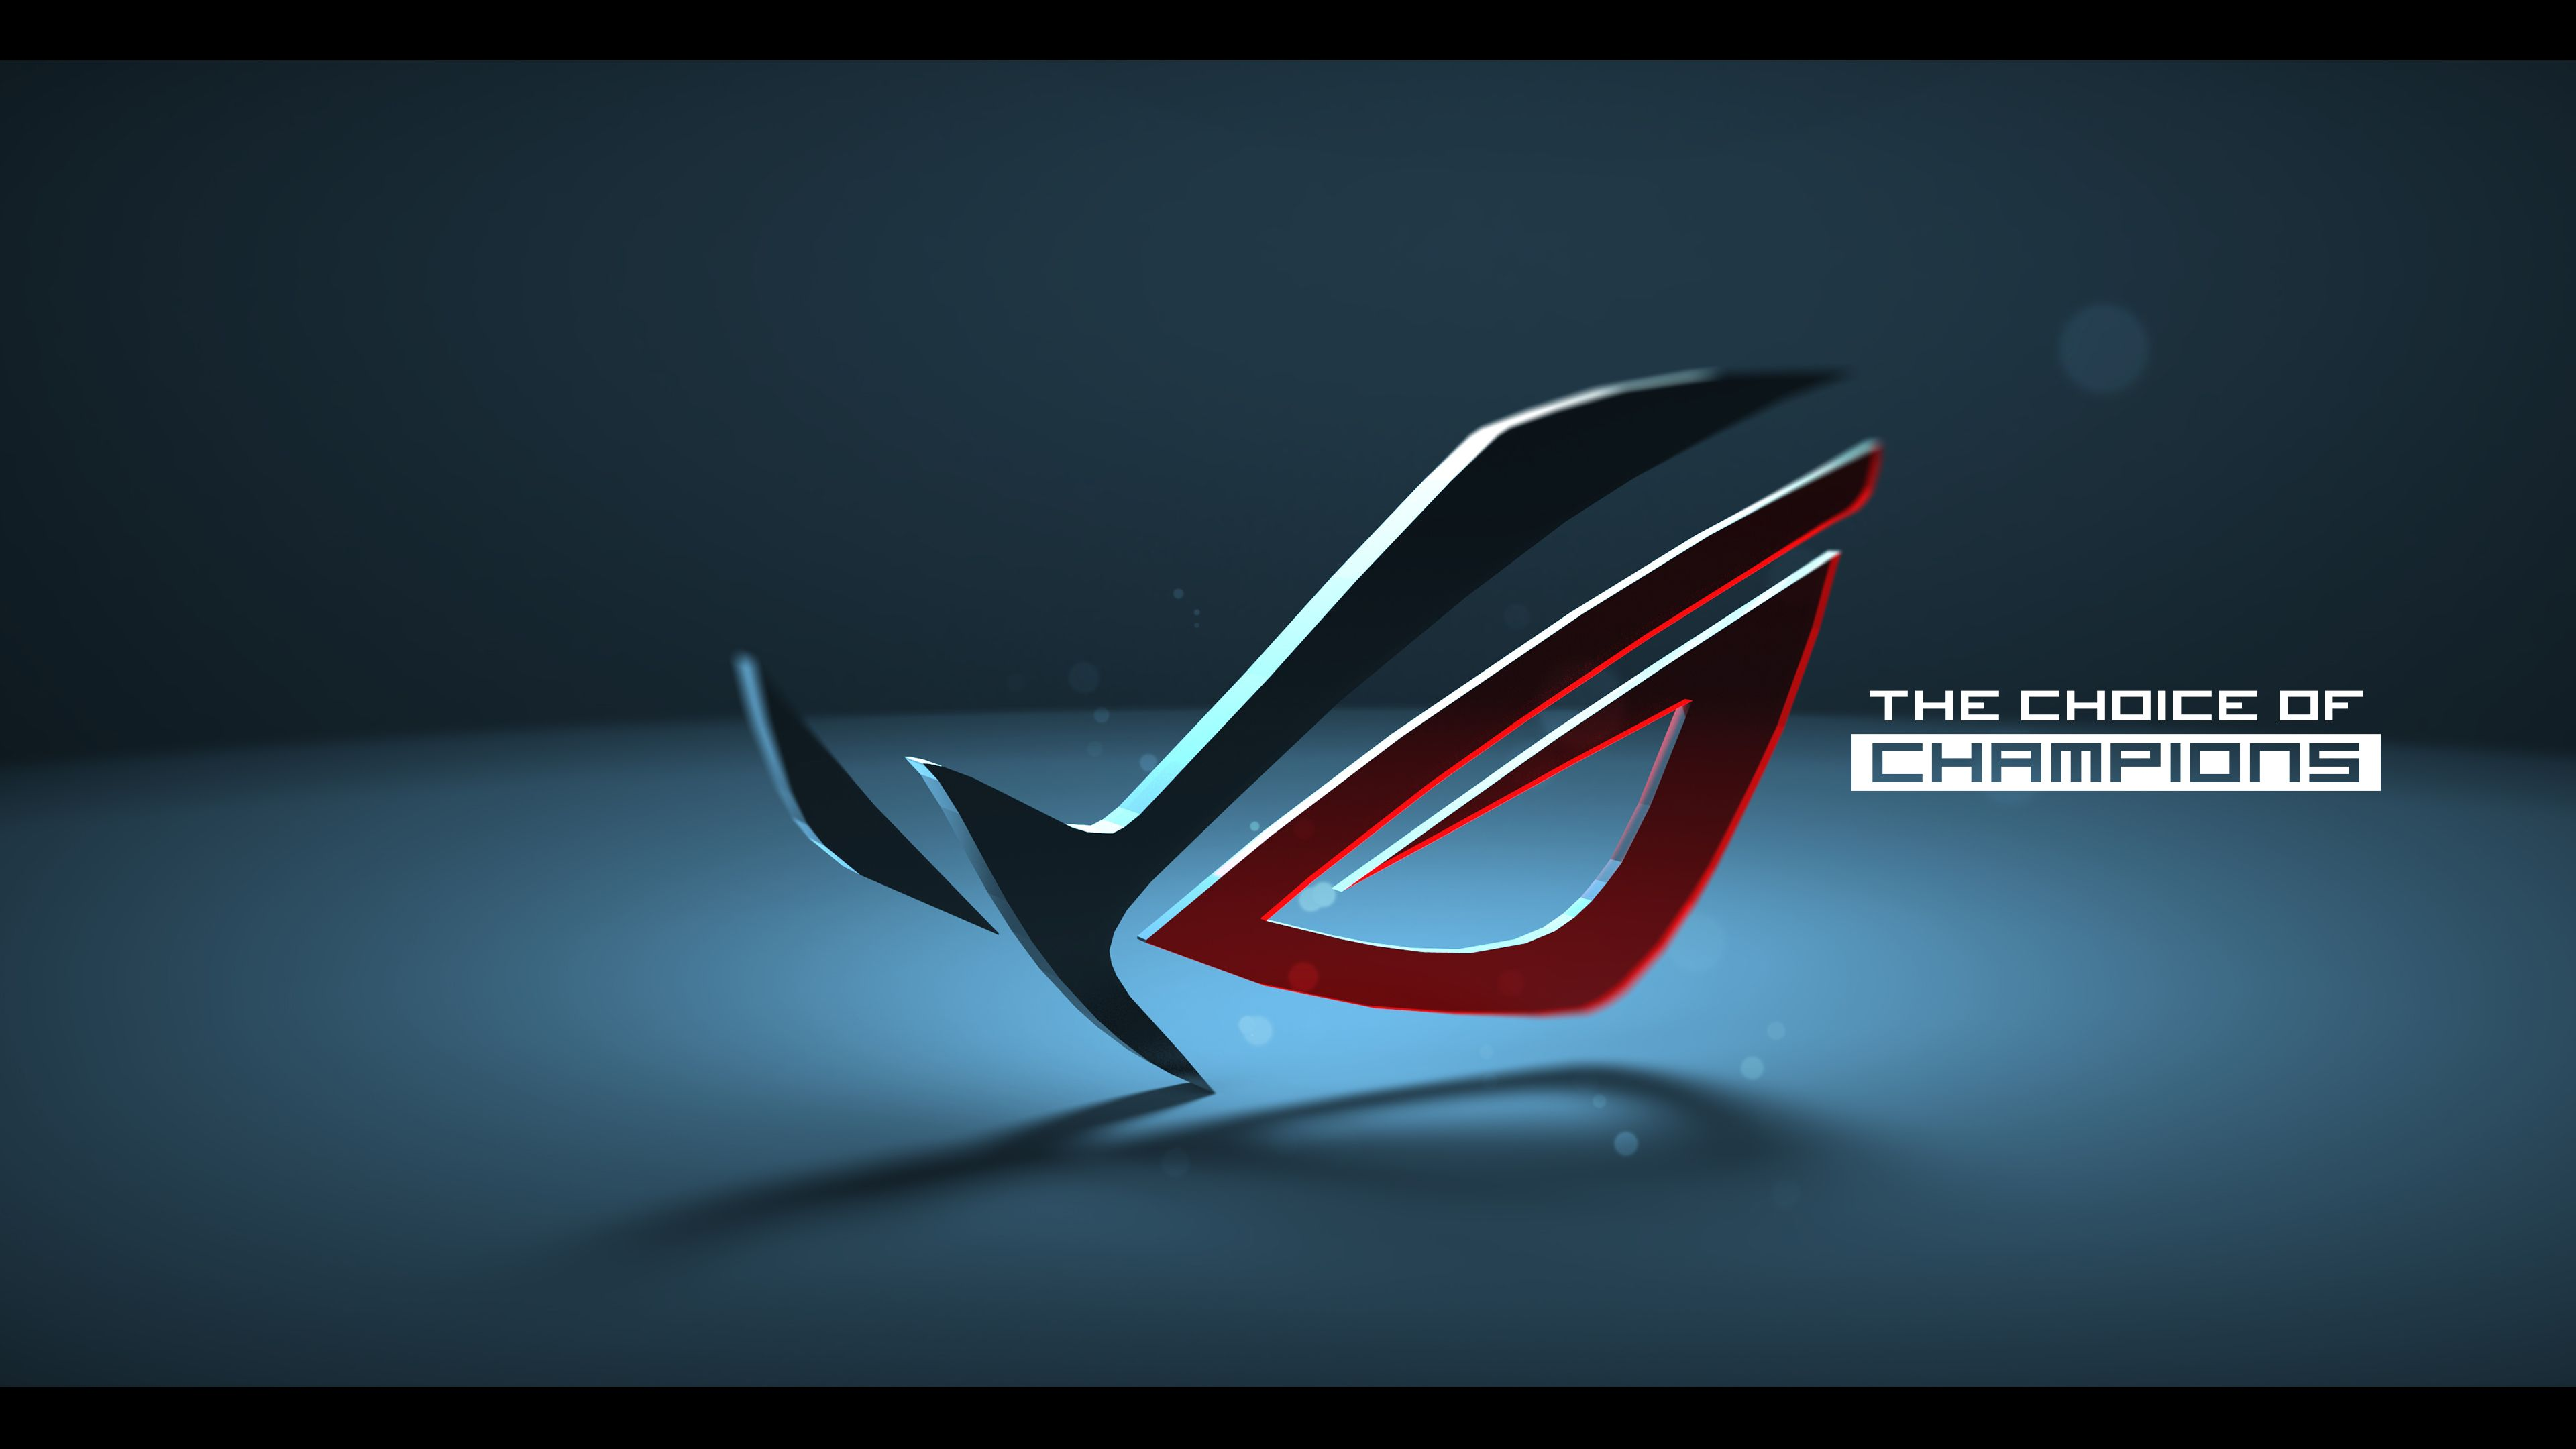 Asus Rog Wallpaper Full Hd Monodomo